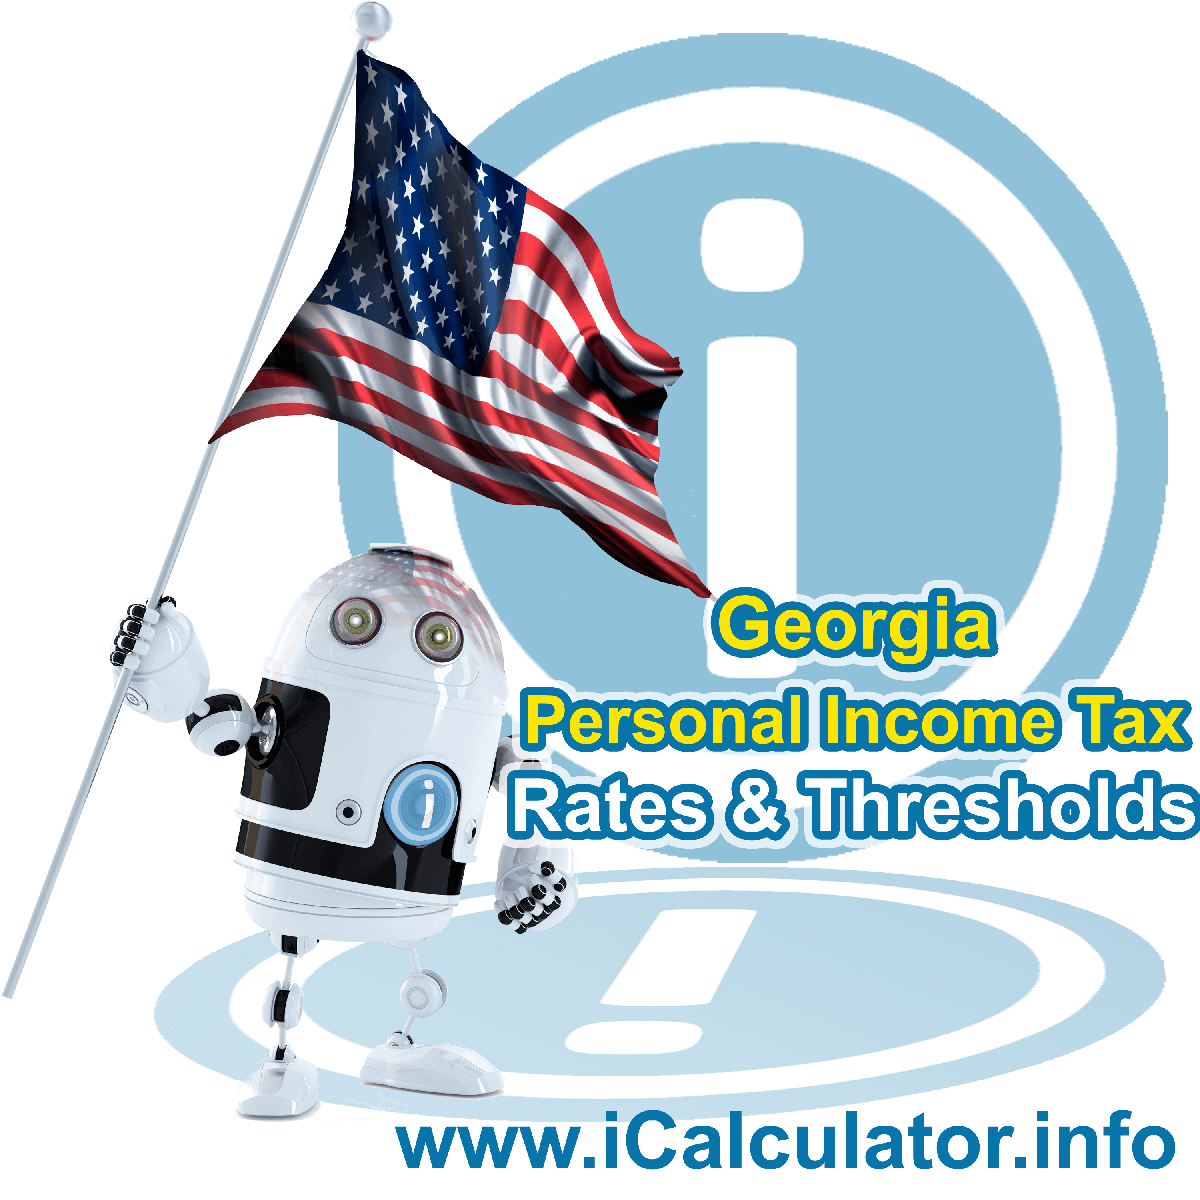 Georgia State Tax Tables 2018. This image displays details of the Georgia State Tax Tables for the 2018 tax return year which is provided in support of the 2018 US Tax Calculator